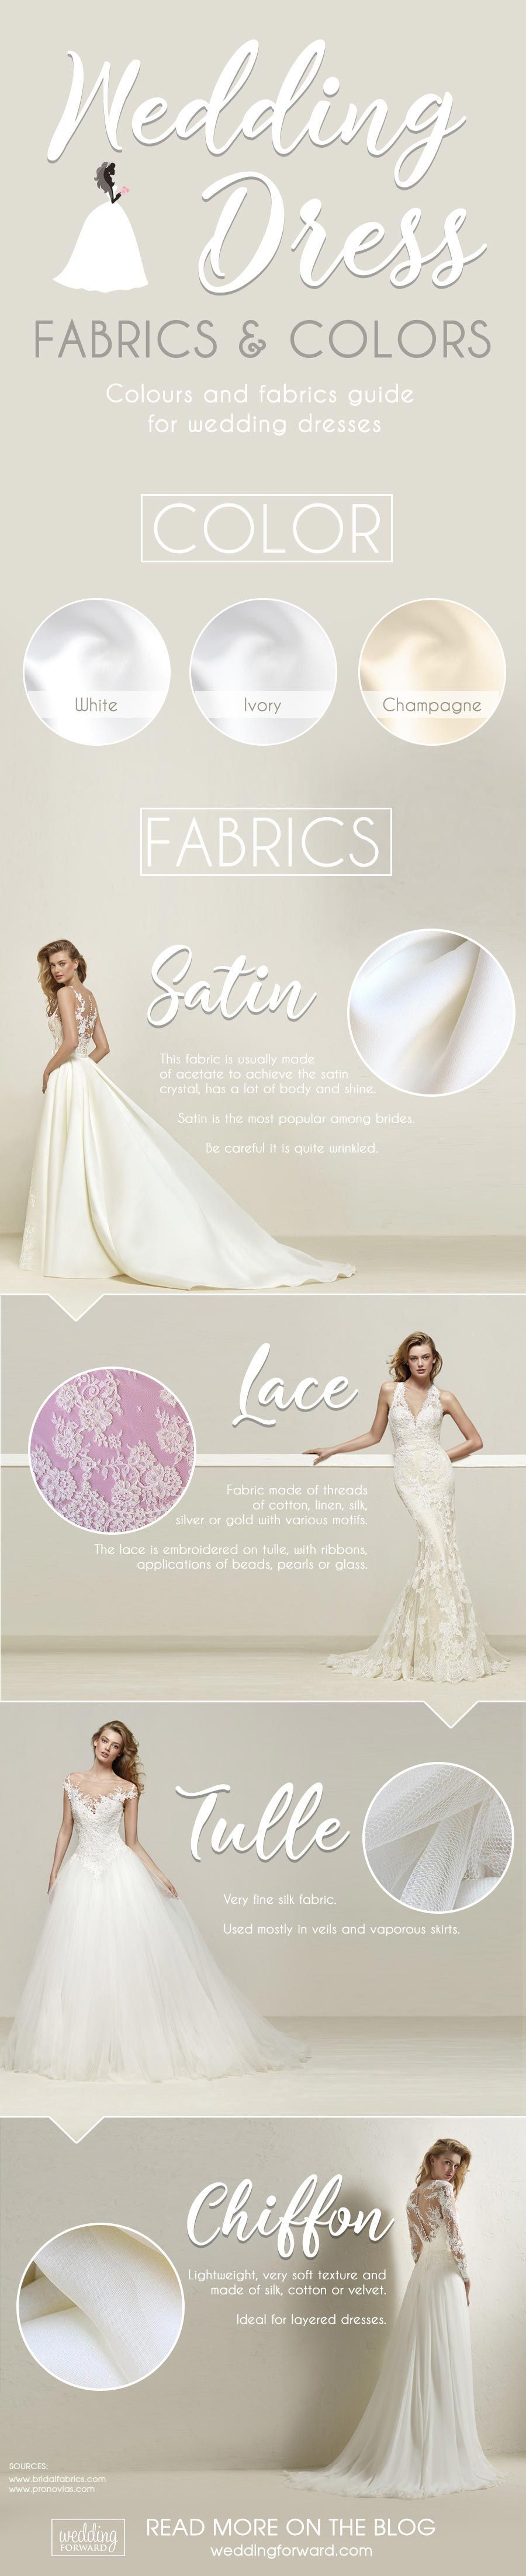 12 Wedding Dress Infographics To Make Your Ping Easier